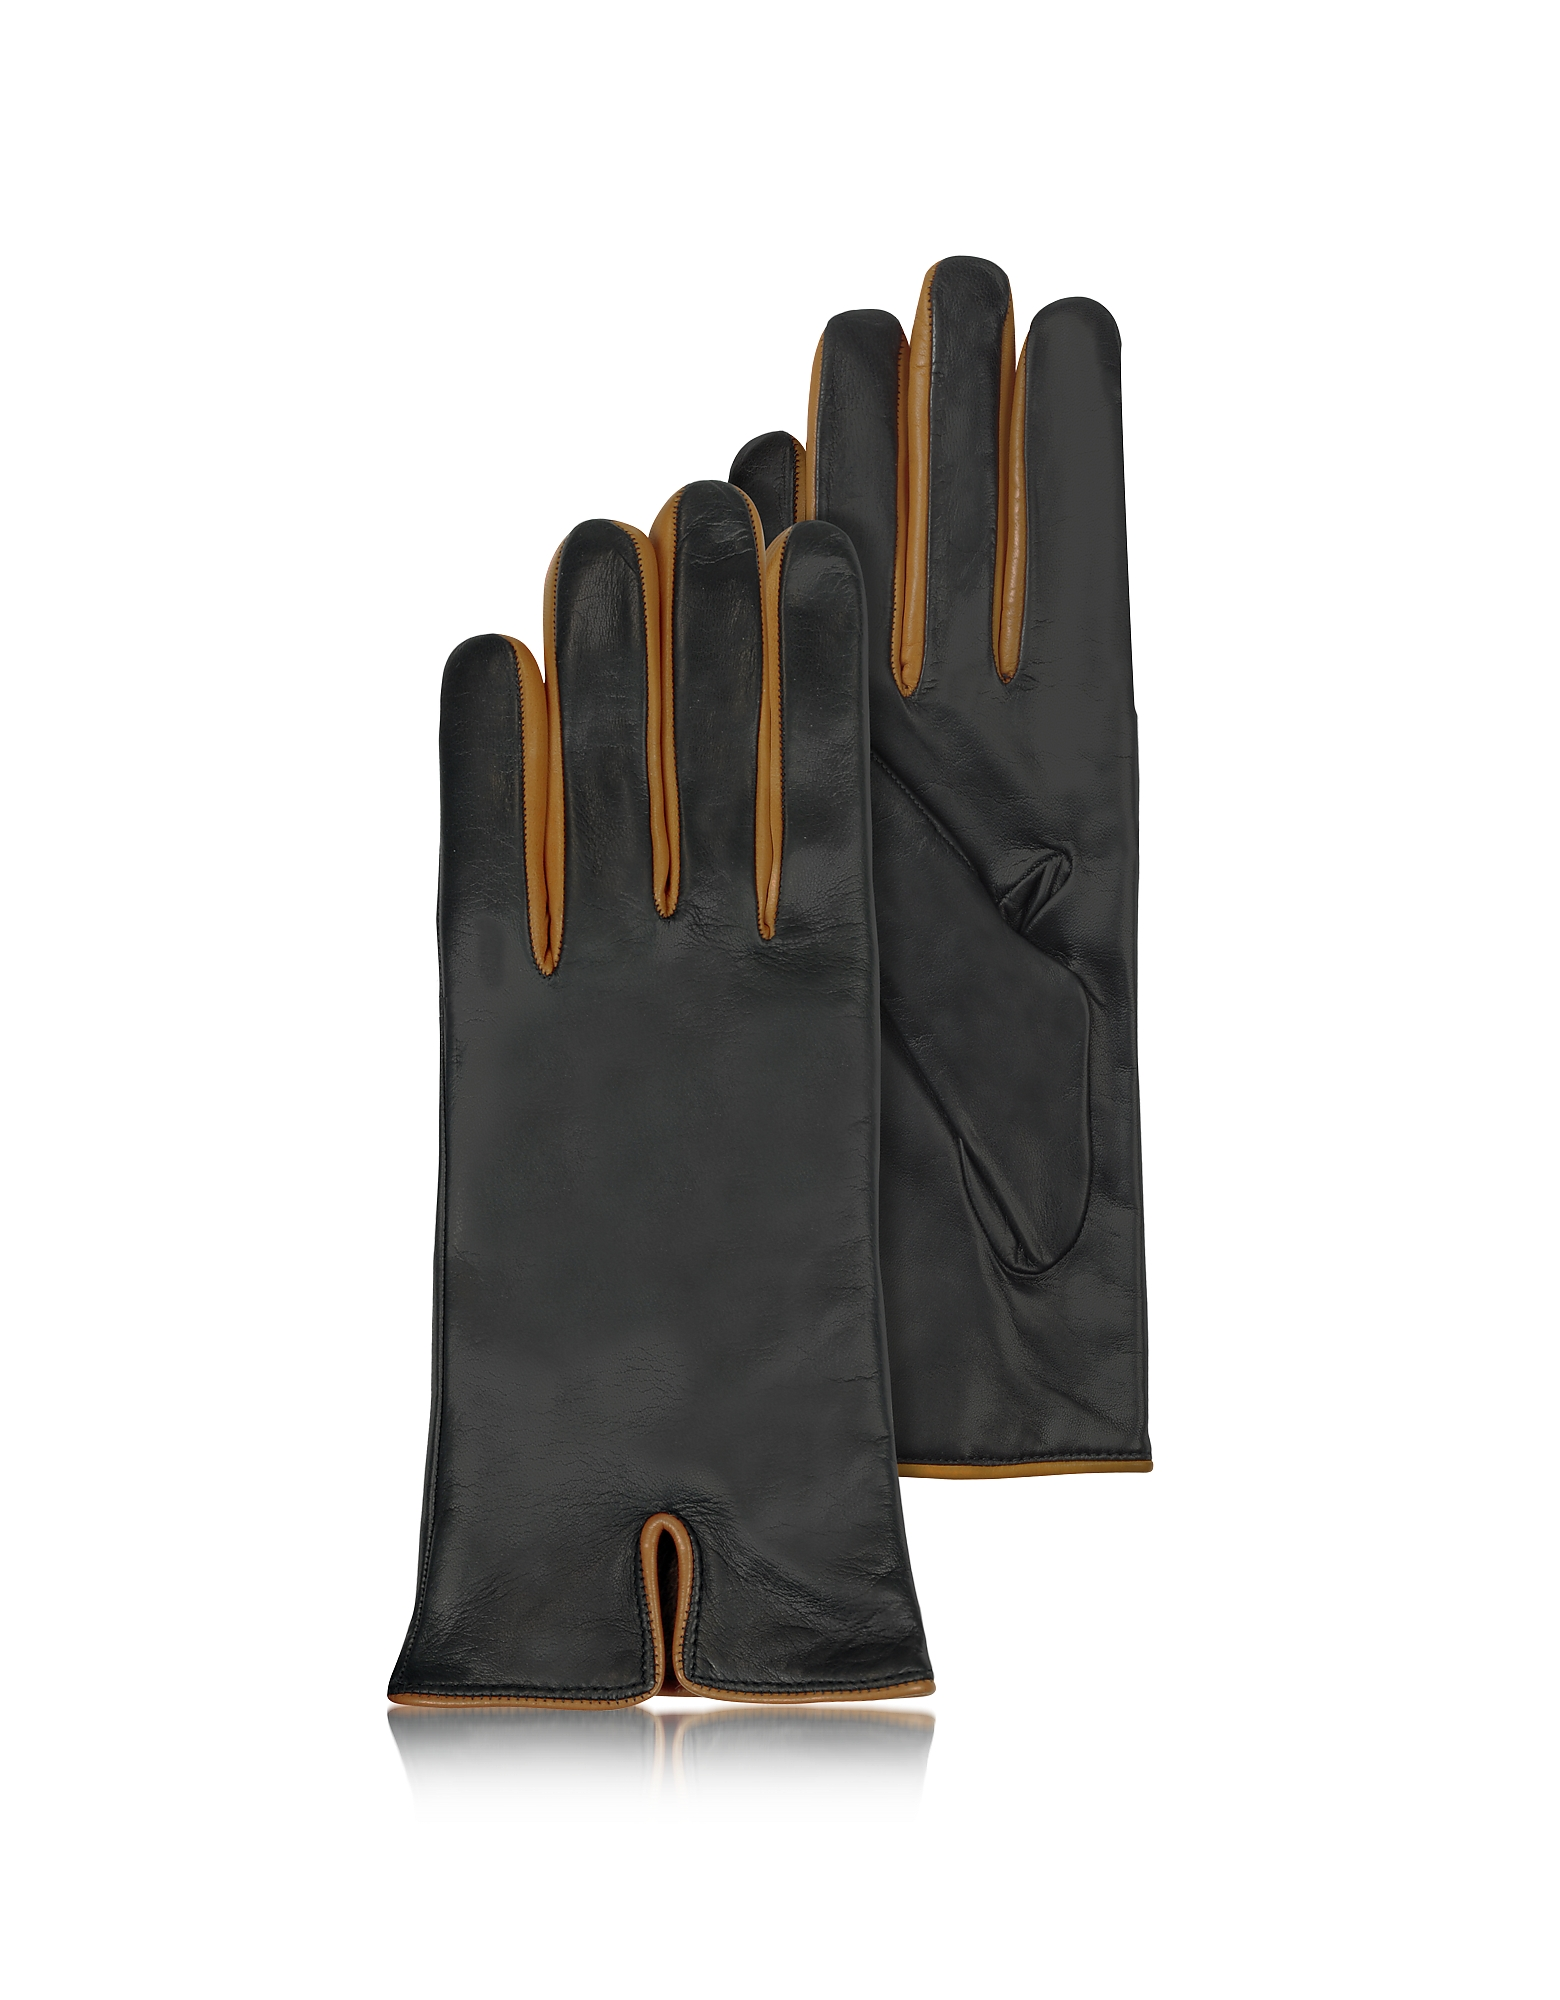 Forzieri Women's Gloves, Black & Cognac Cashmere Lined Leather Ladies' Gloves